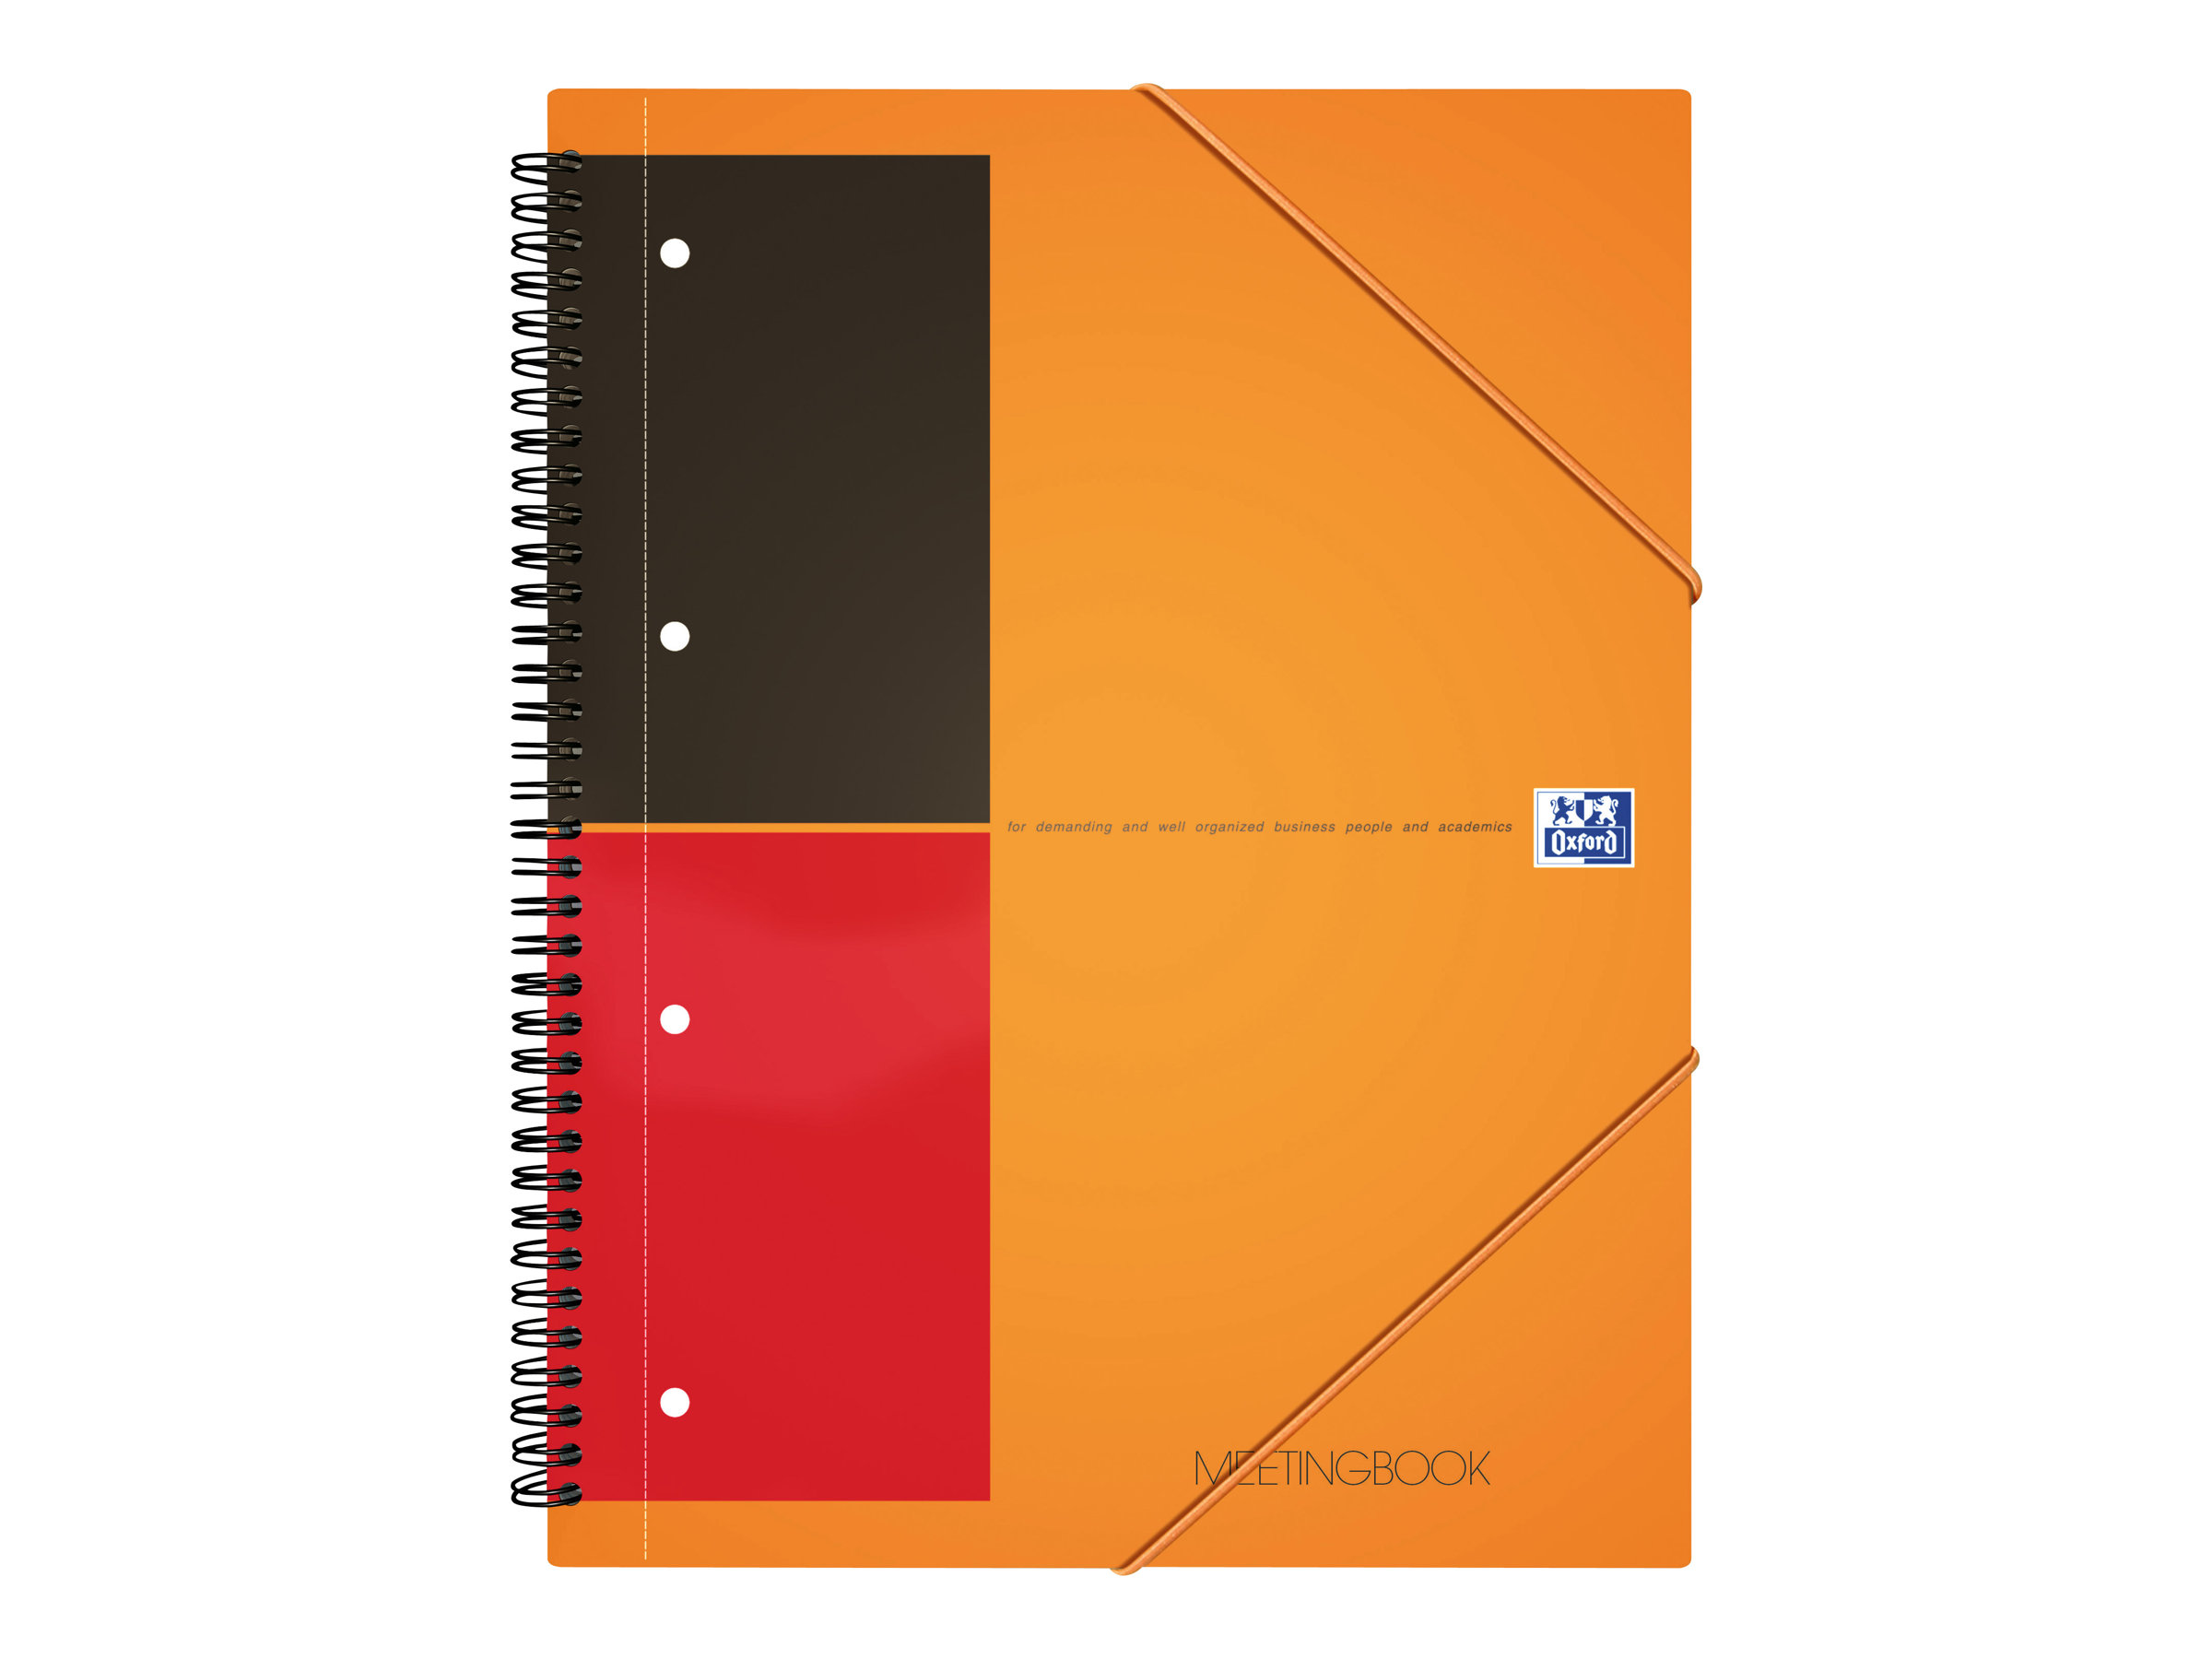 Cahiers professionnels Oxford International Meetingbook A4+ - Cahier - 160 pages - papier blanc - règle - perforé